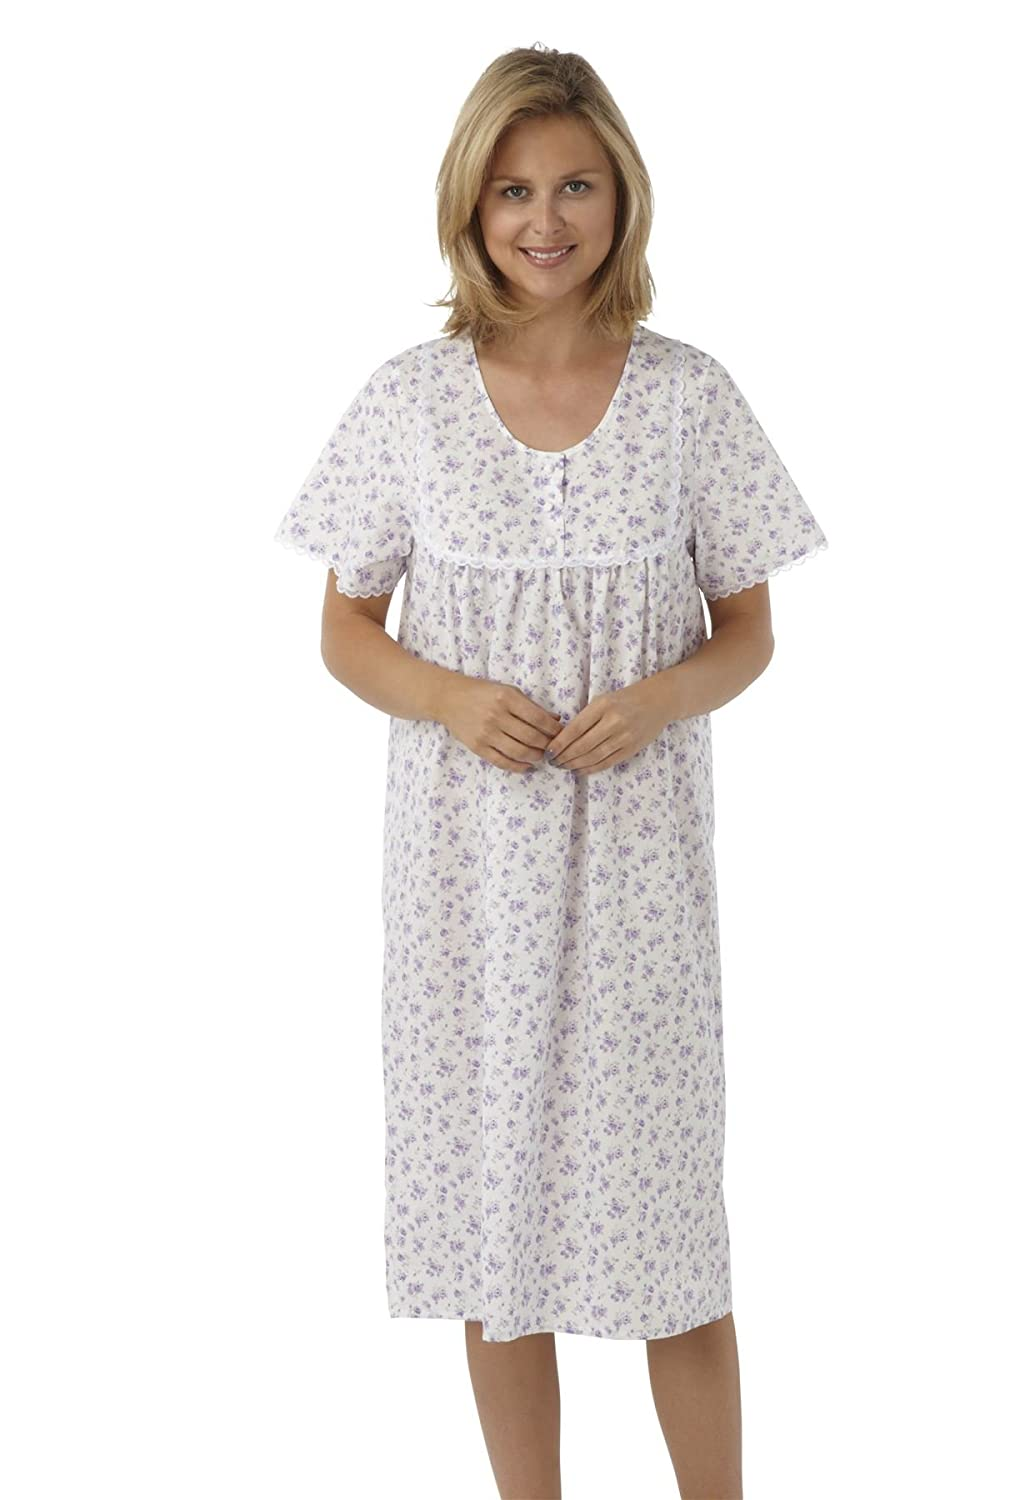 Ladies Plus Size Short Sleeved Poly//Cotton Nightdress Sizes 32//34 36//38 Lilac Pink or Blue Floral